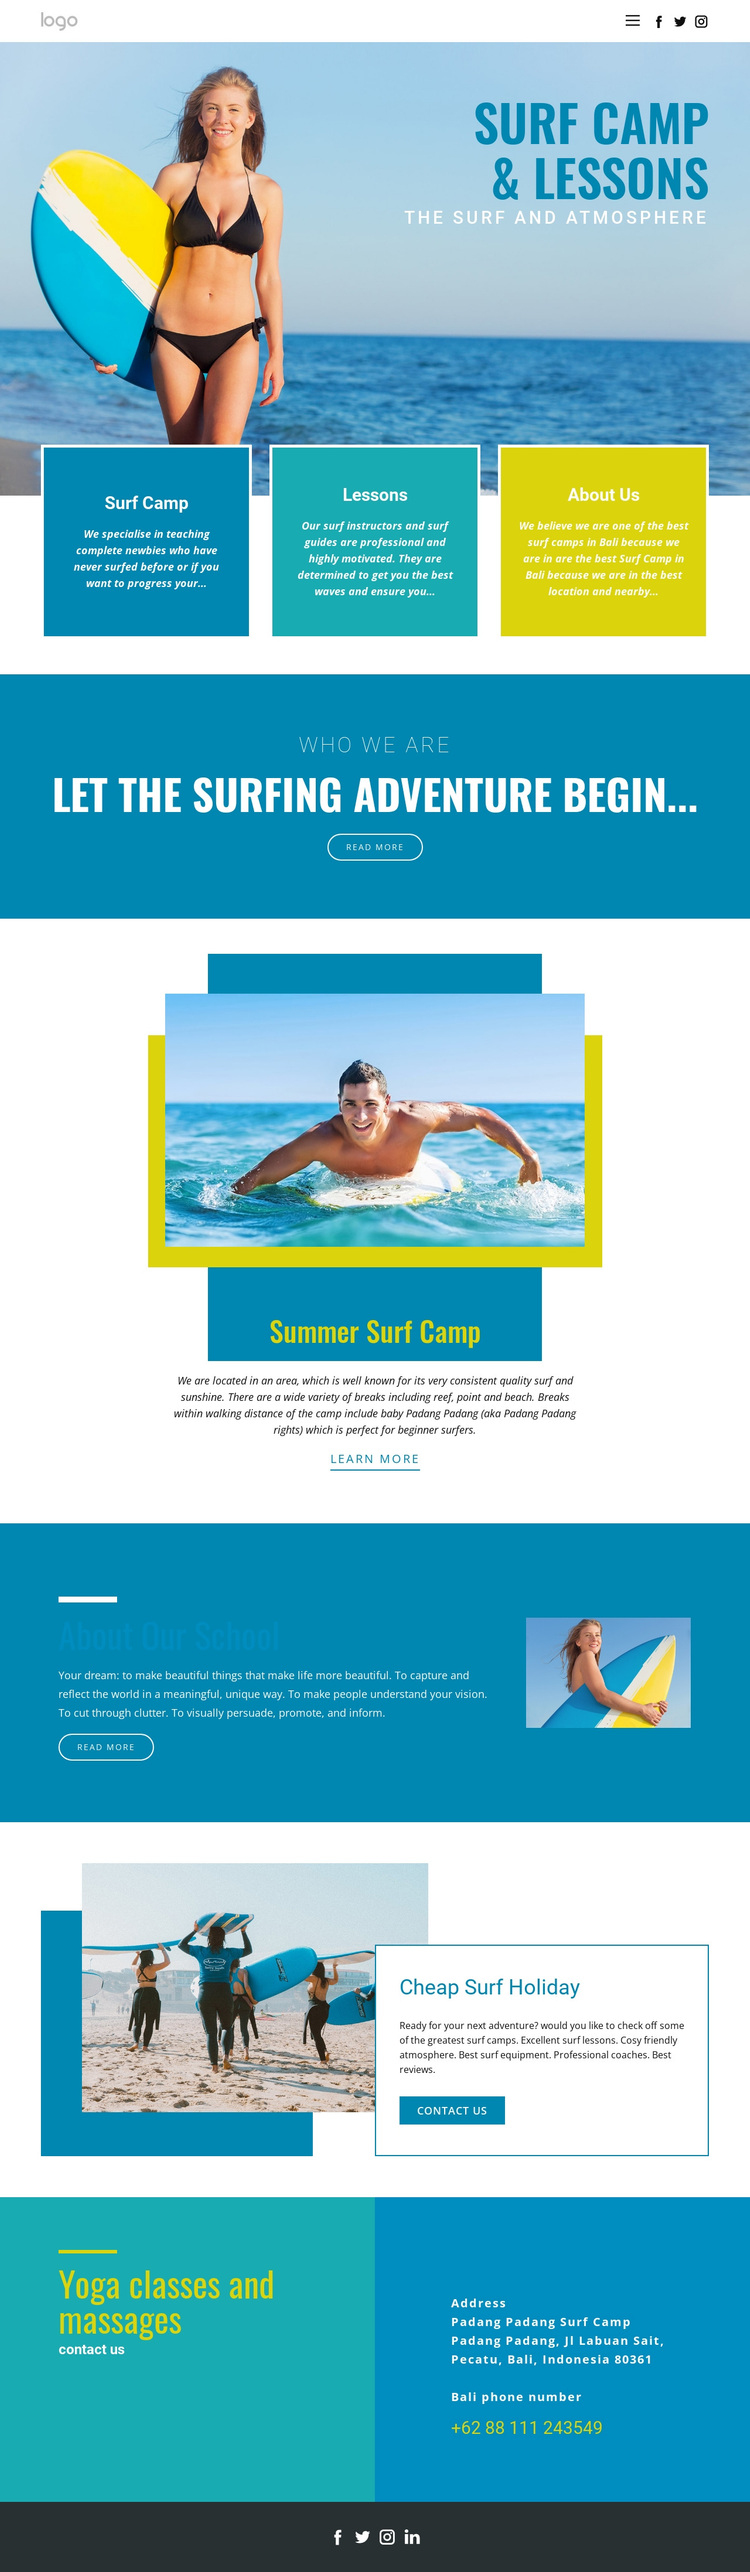 Camp for summer sports Joomla Page Builder